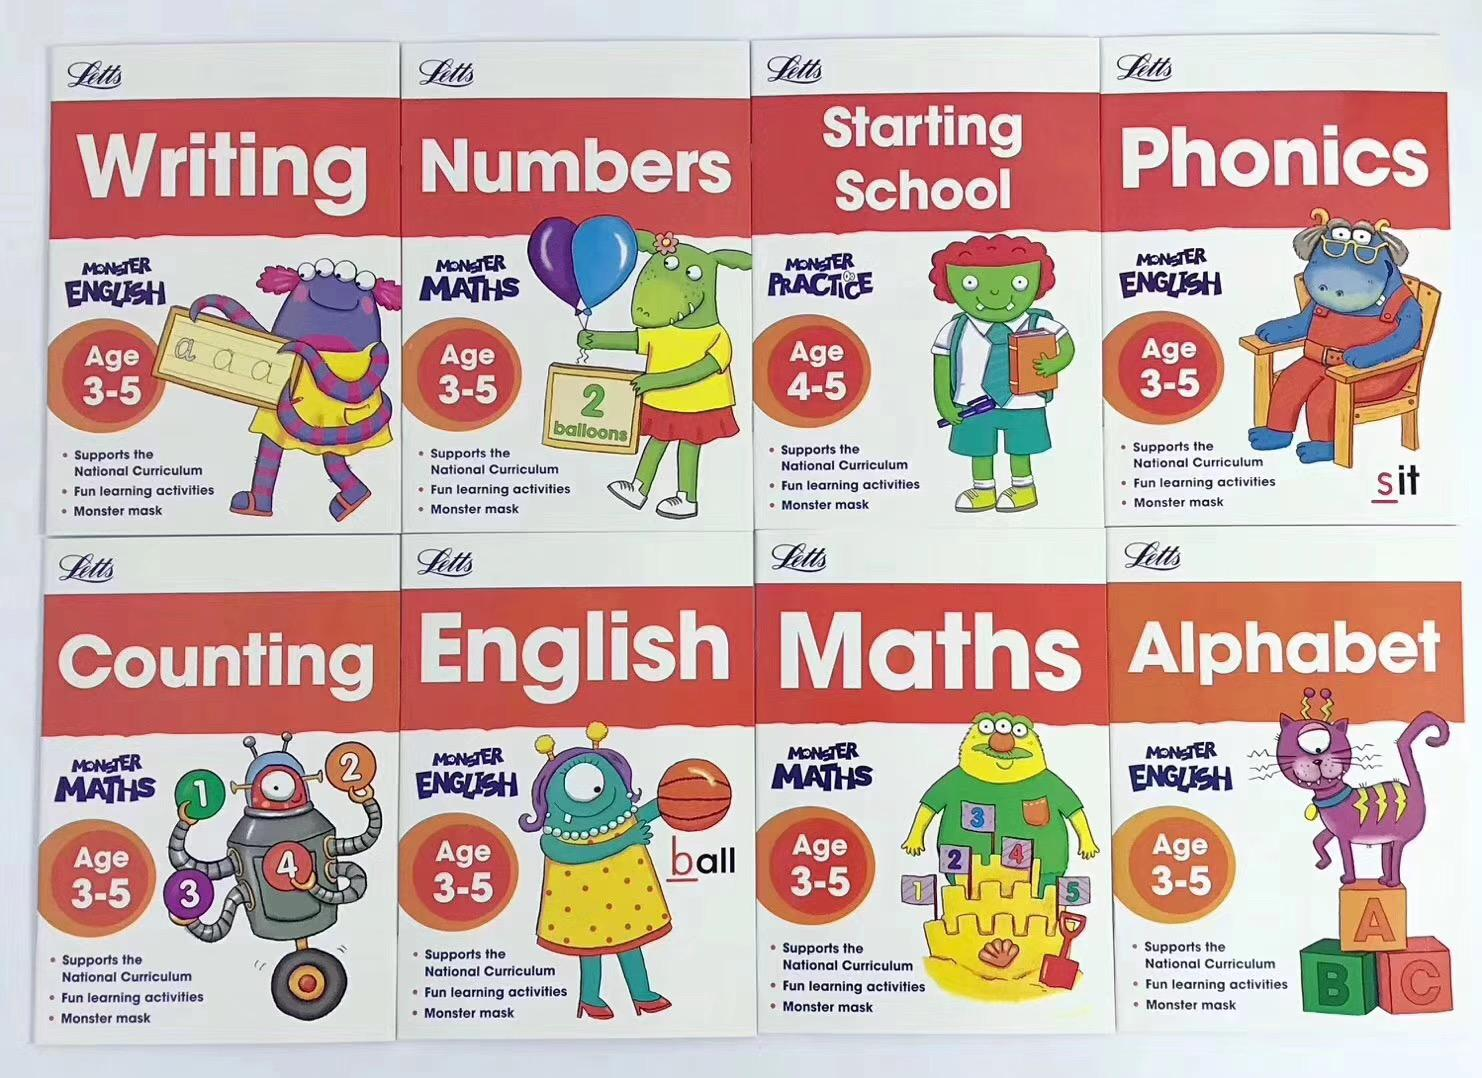 [8 Books] Letts Monster Practice Activity Book English Maths Writing Alphabet Phonics Numbers Counting